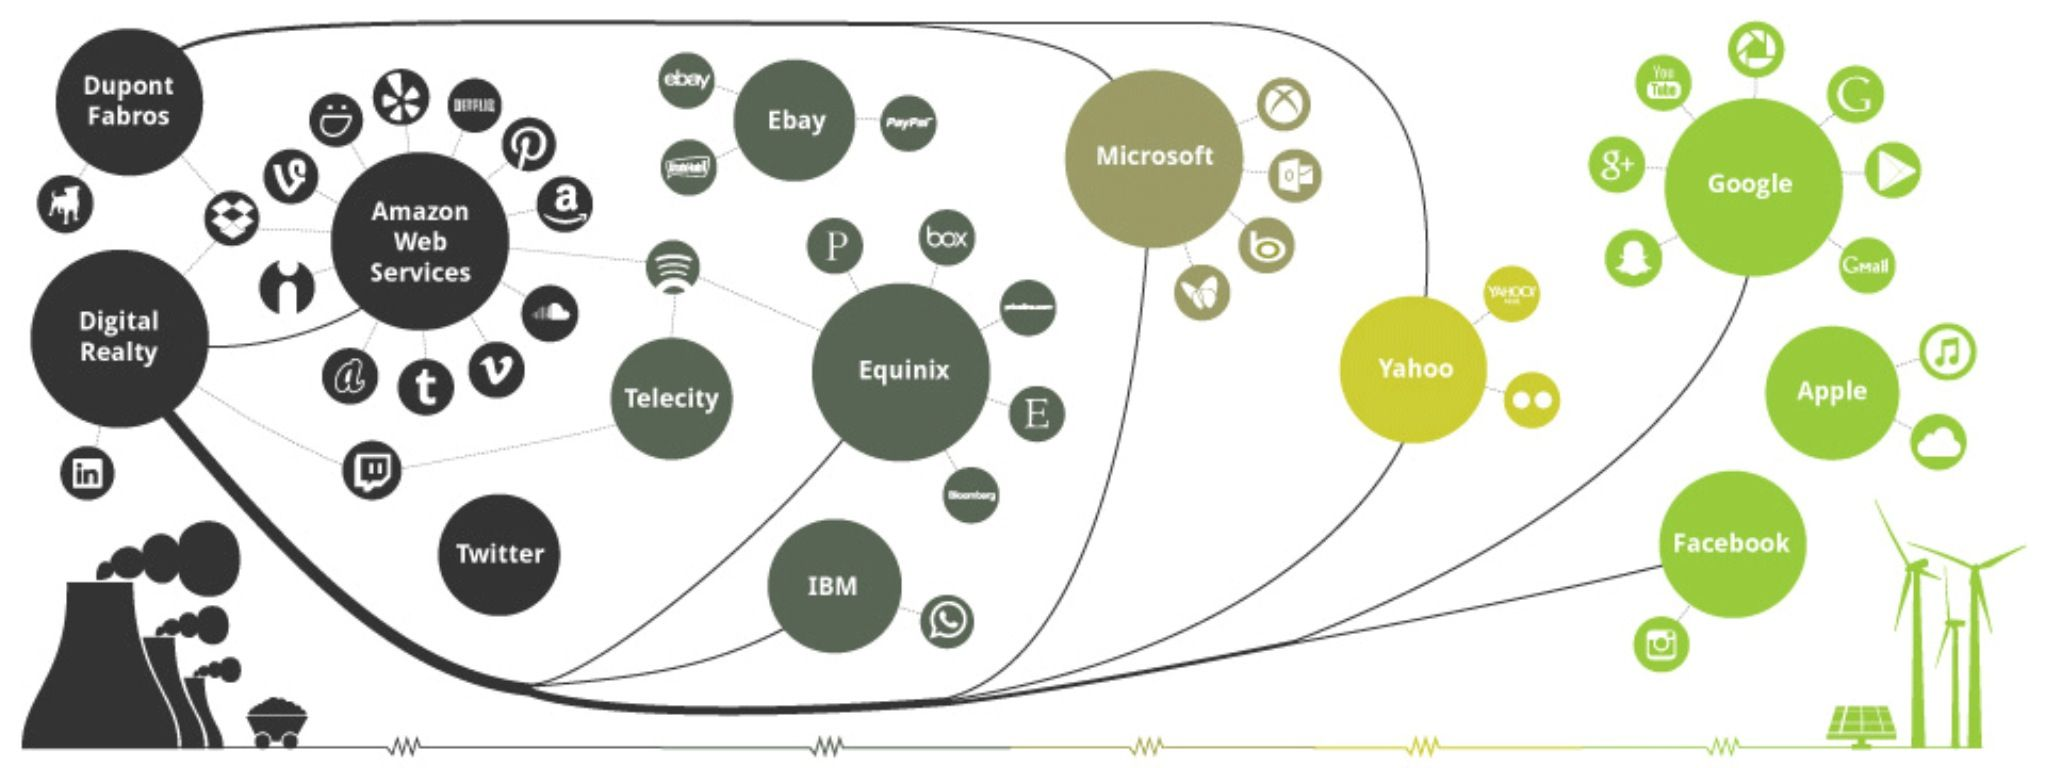 The Greenest Tech Companies ➔   http://greenpeace.org/usa/en/campaigns/global-warming-and-energy/A-Green-Internet/clickingclean/